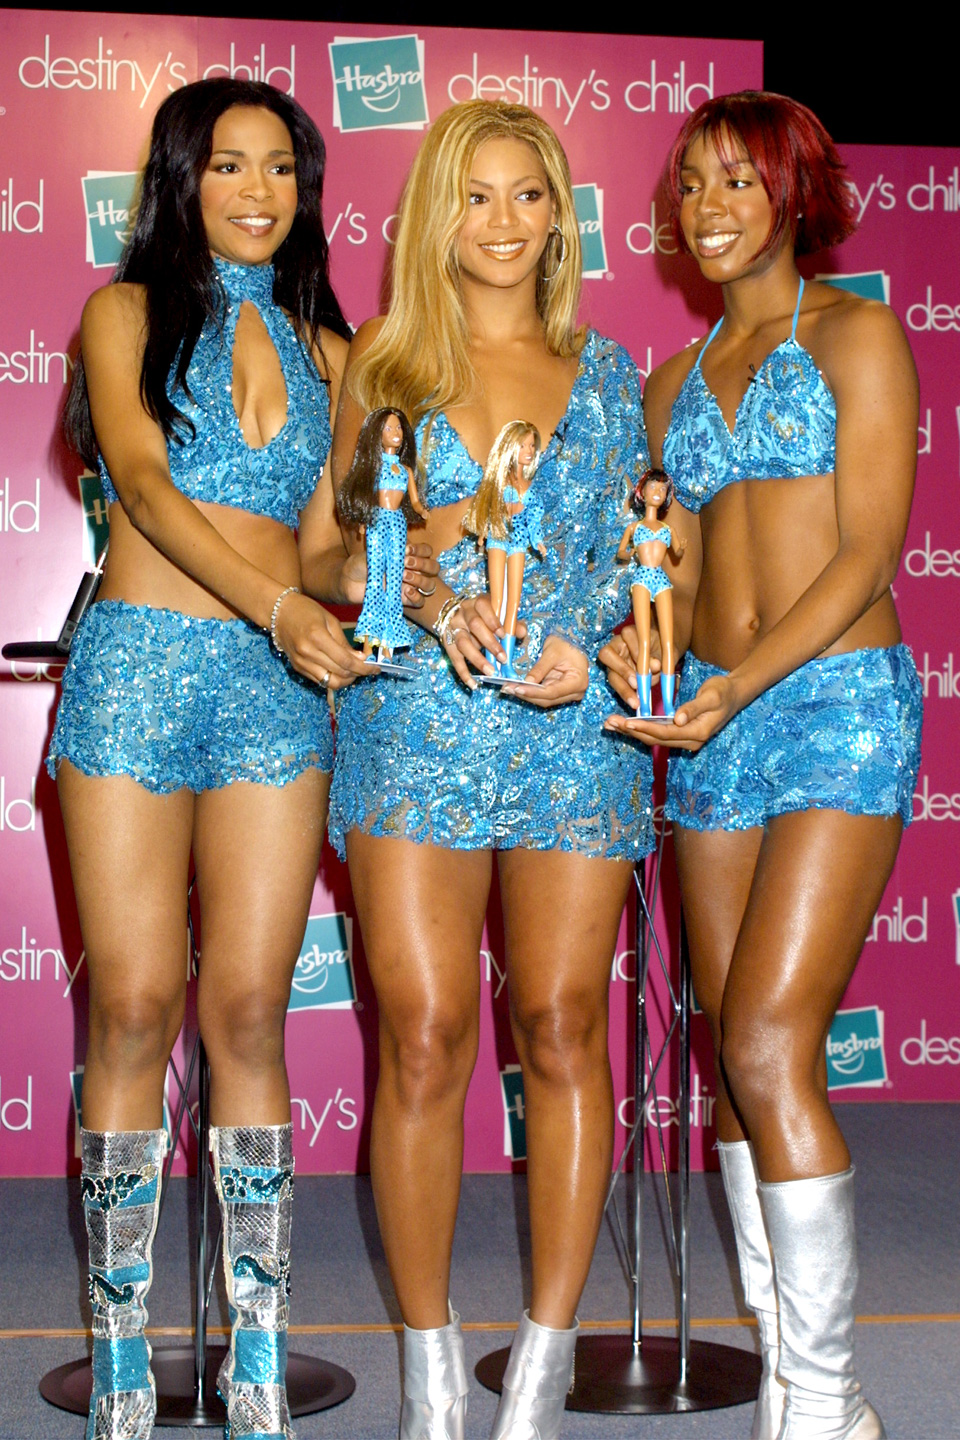 Remember these iconic Destiny's Child outfits?